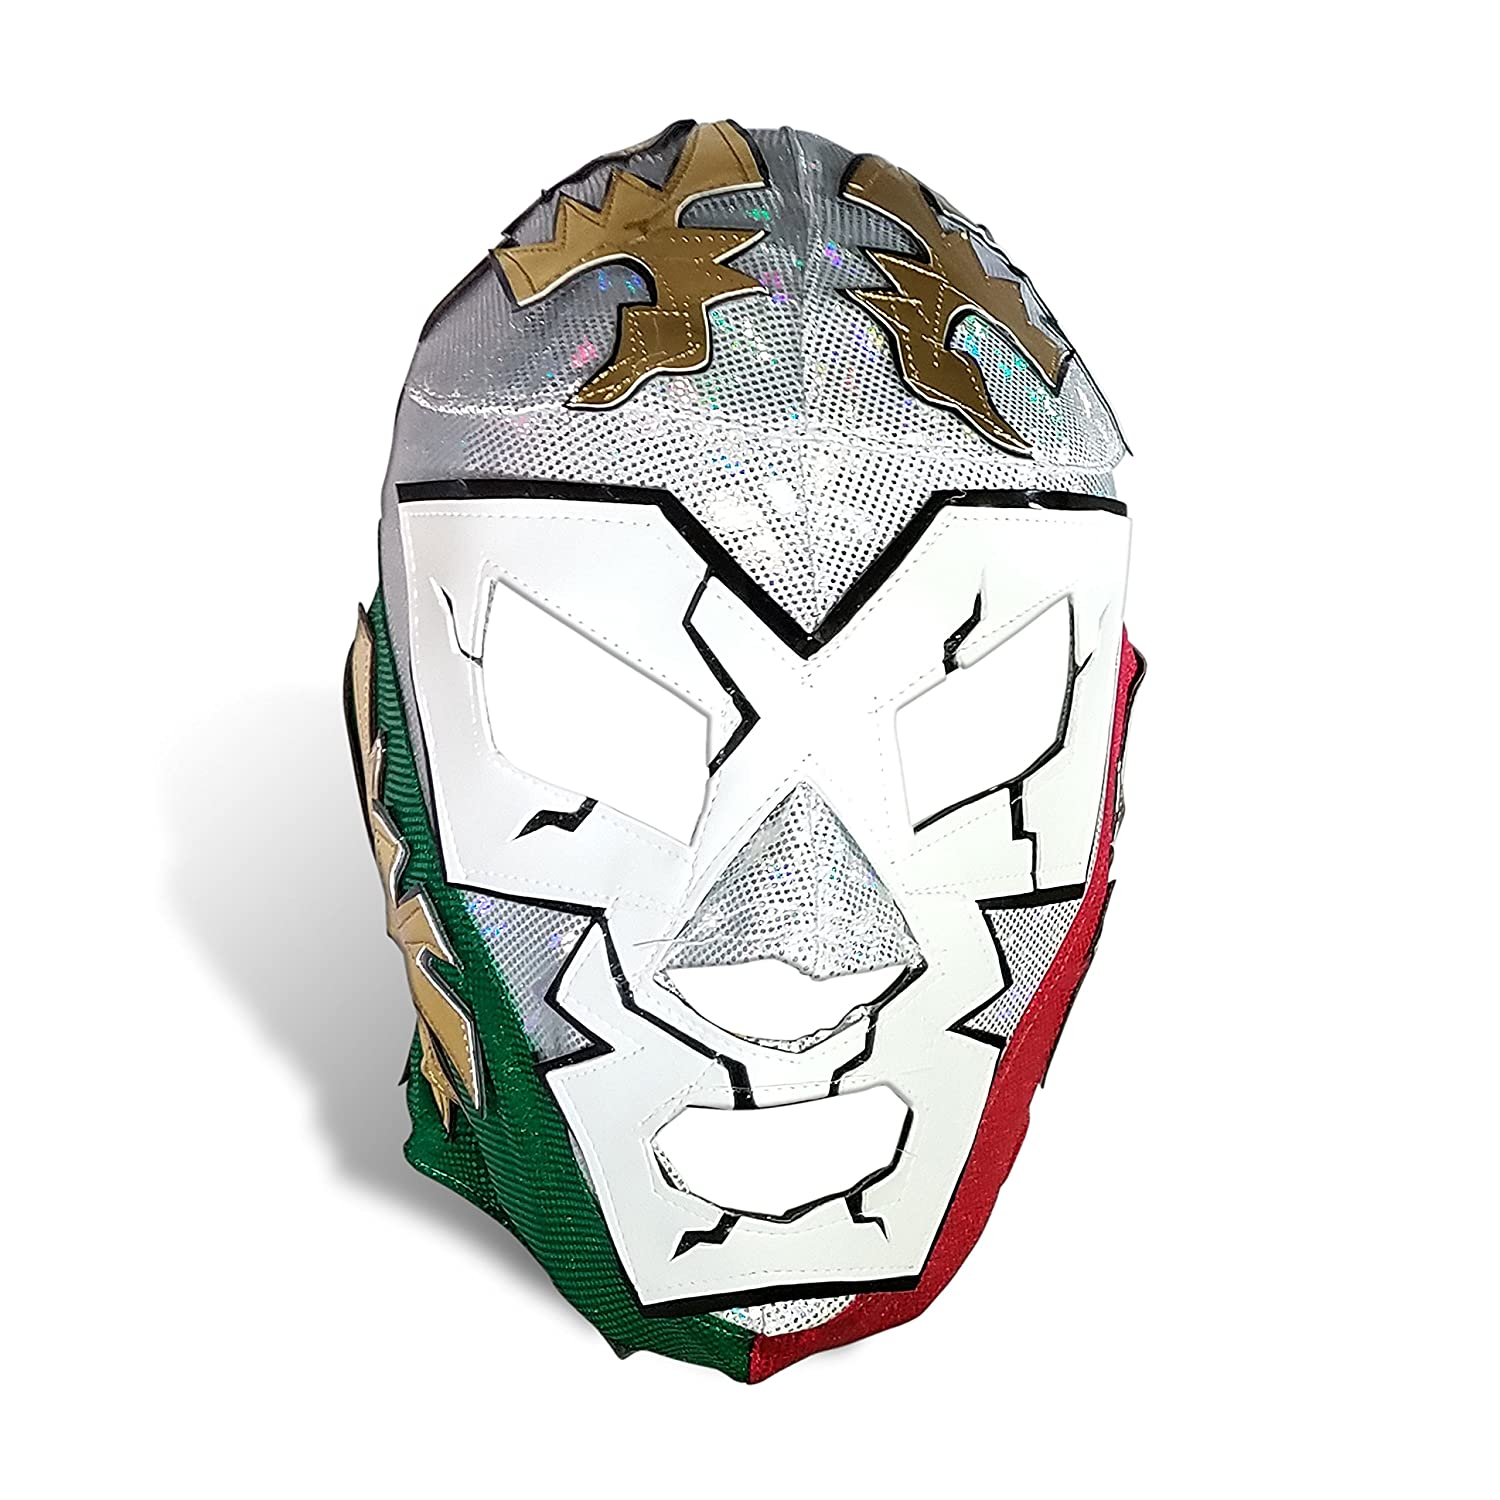 Amazon.com: Dr. Wagner Jr. Mexican Pro-Wrestling Lycra Mask- Lucha Libre Mask: Sports & Outdoors